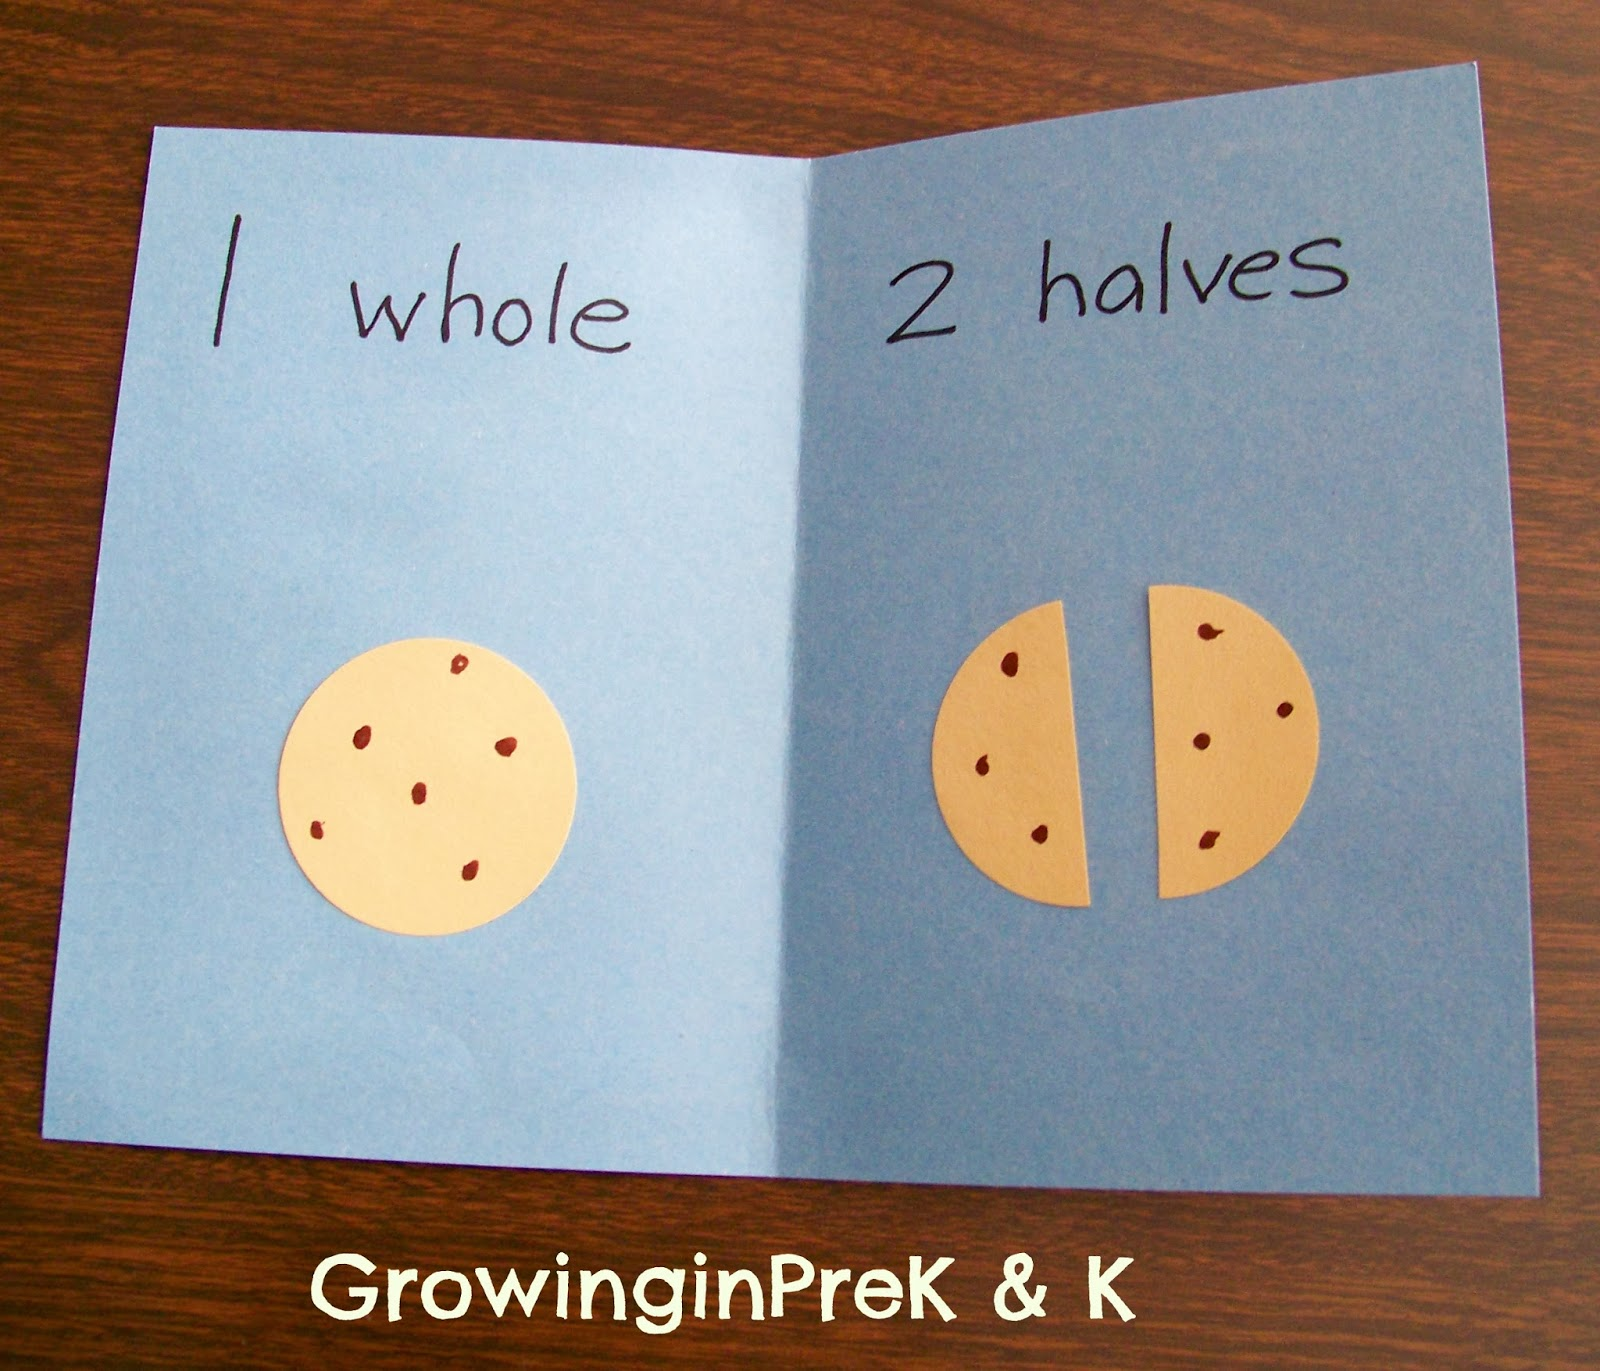 Growinginpre K And K Whole Half And Quarter In Kindergarten